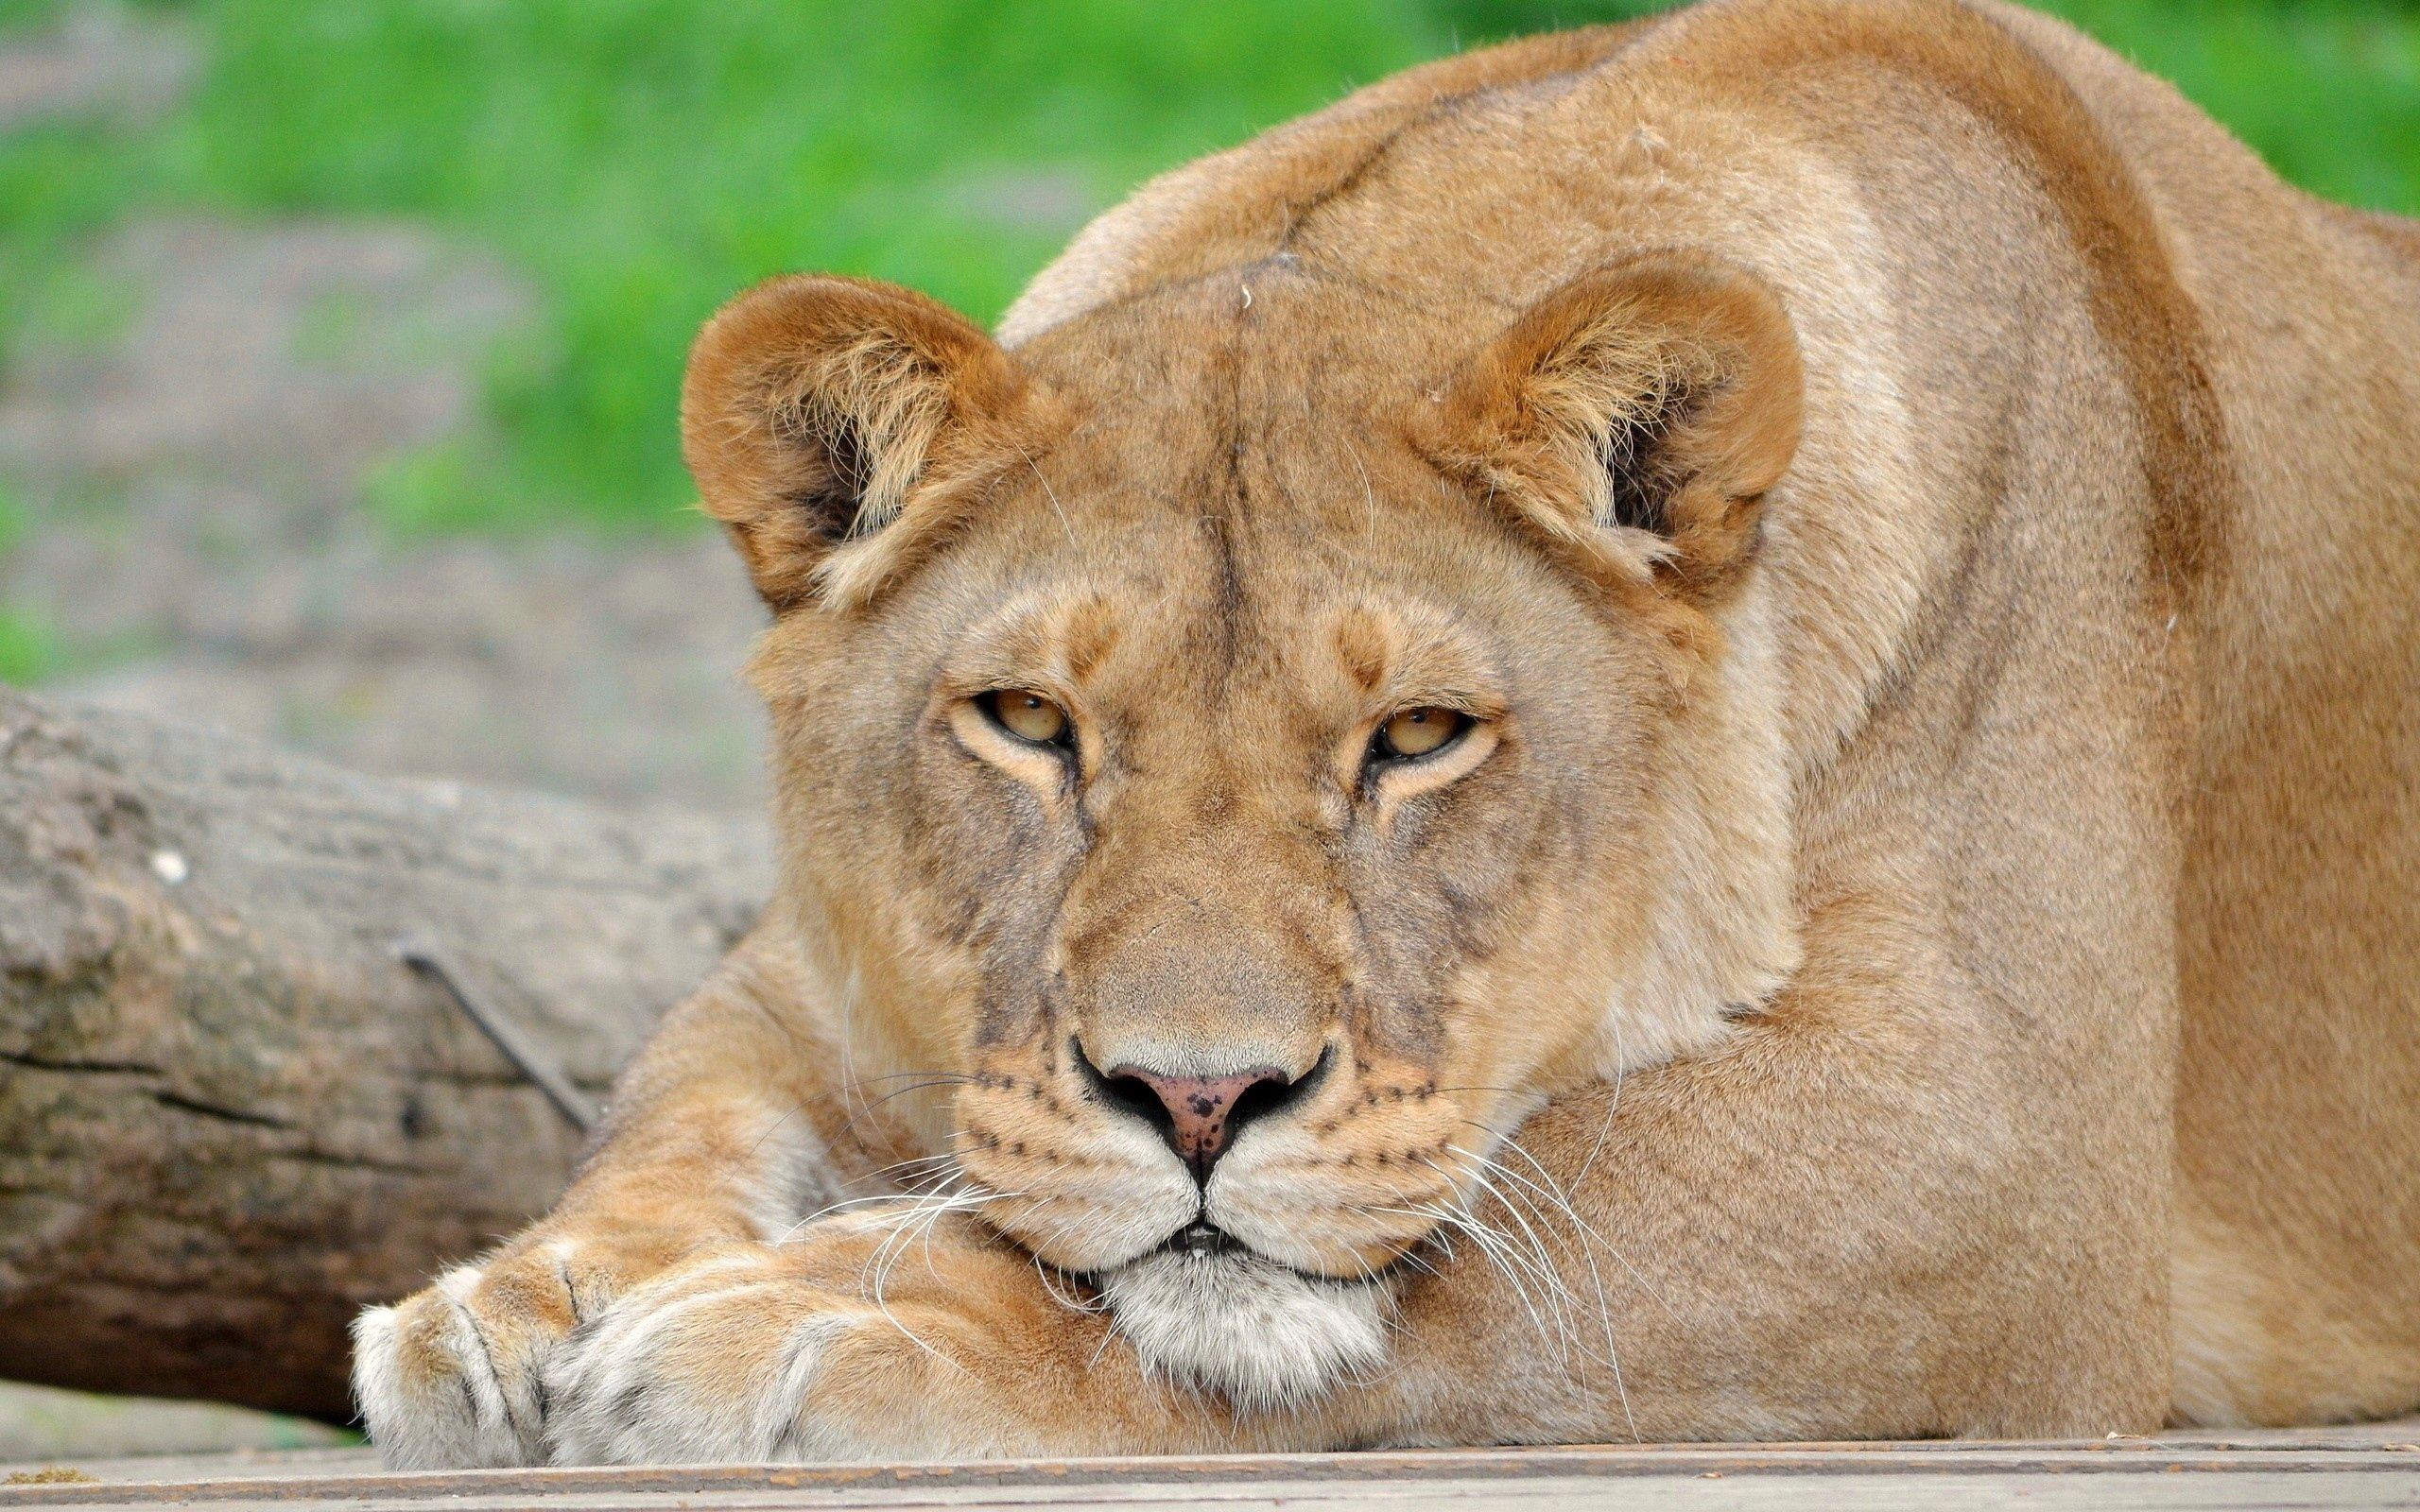 97118 download wallpaper Animals, Lion, Muzzle, Sight, Opinion, Big Cat screensavers and pictures for free